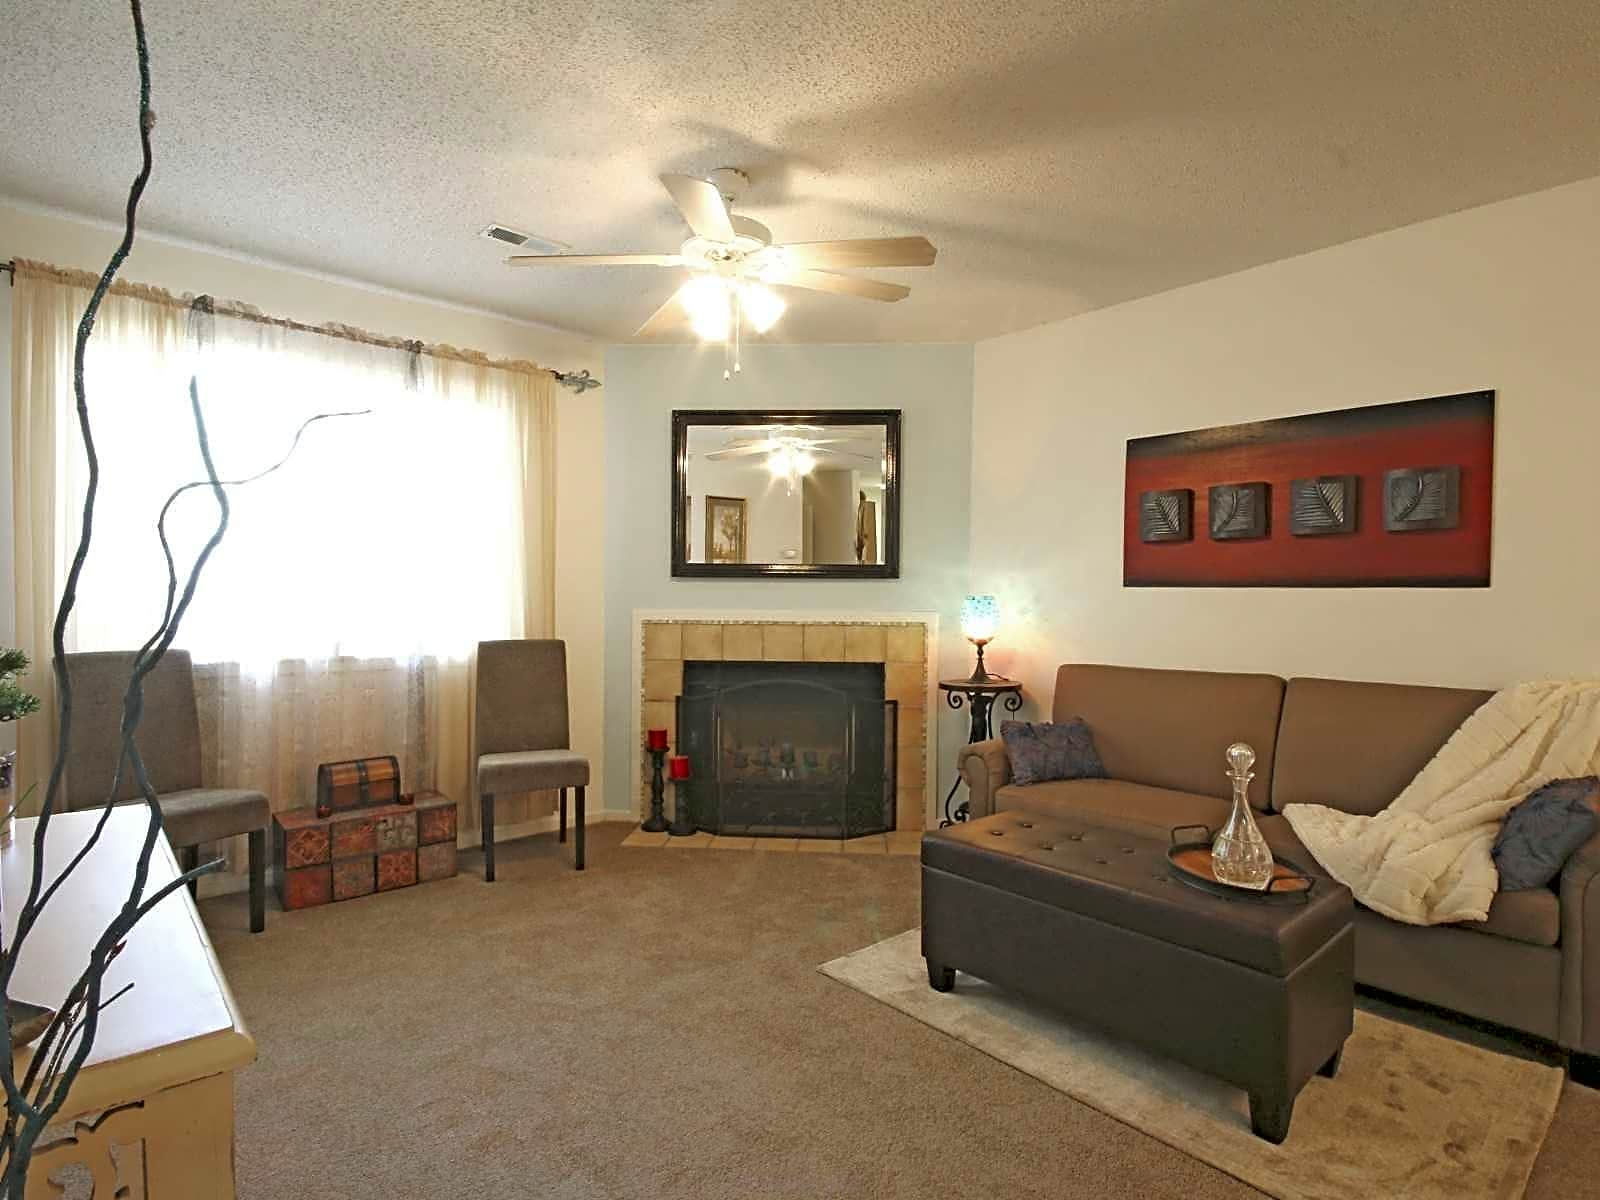 Pet Friendly Apartments In North Charleston Sc Pet Friendly Houses For Rent